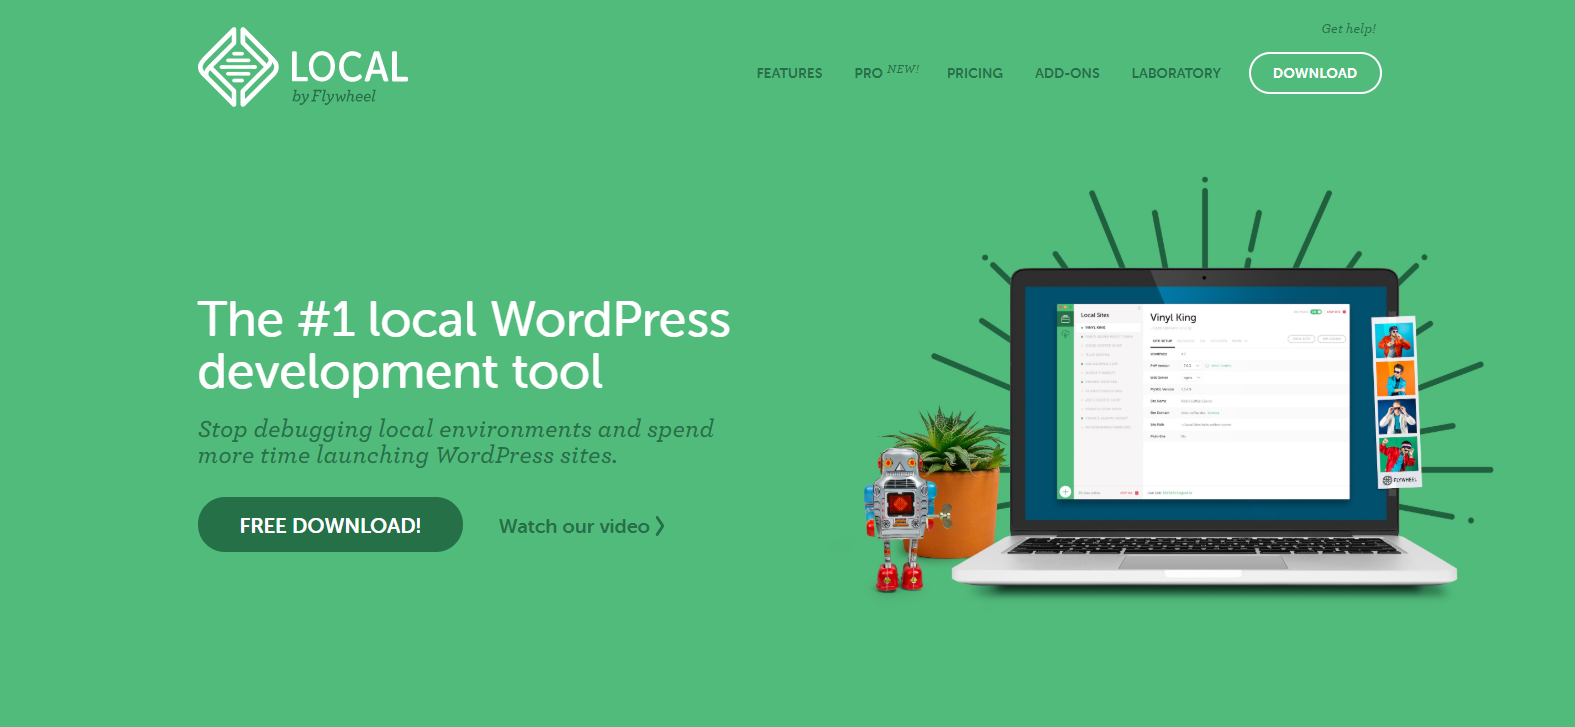 Local by Flywheel - Your #1 local development tool for WordPress Theme Development